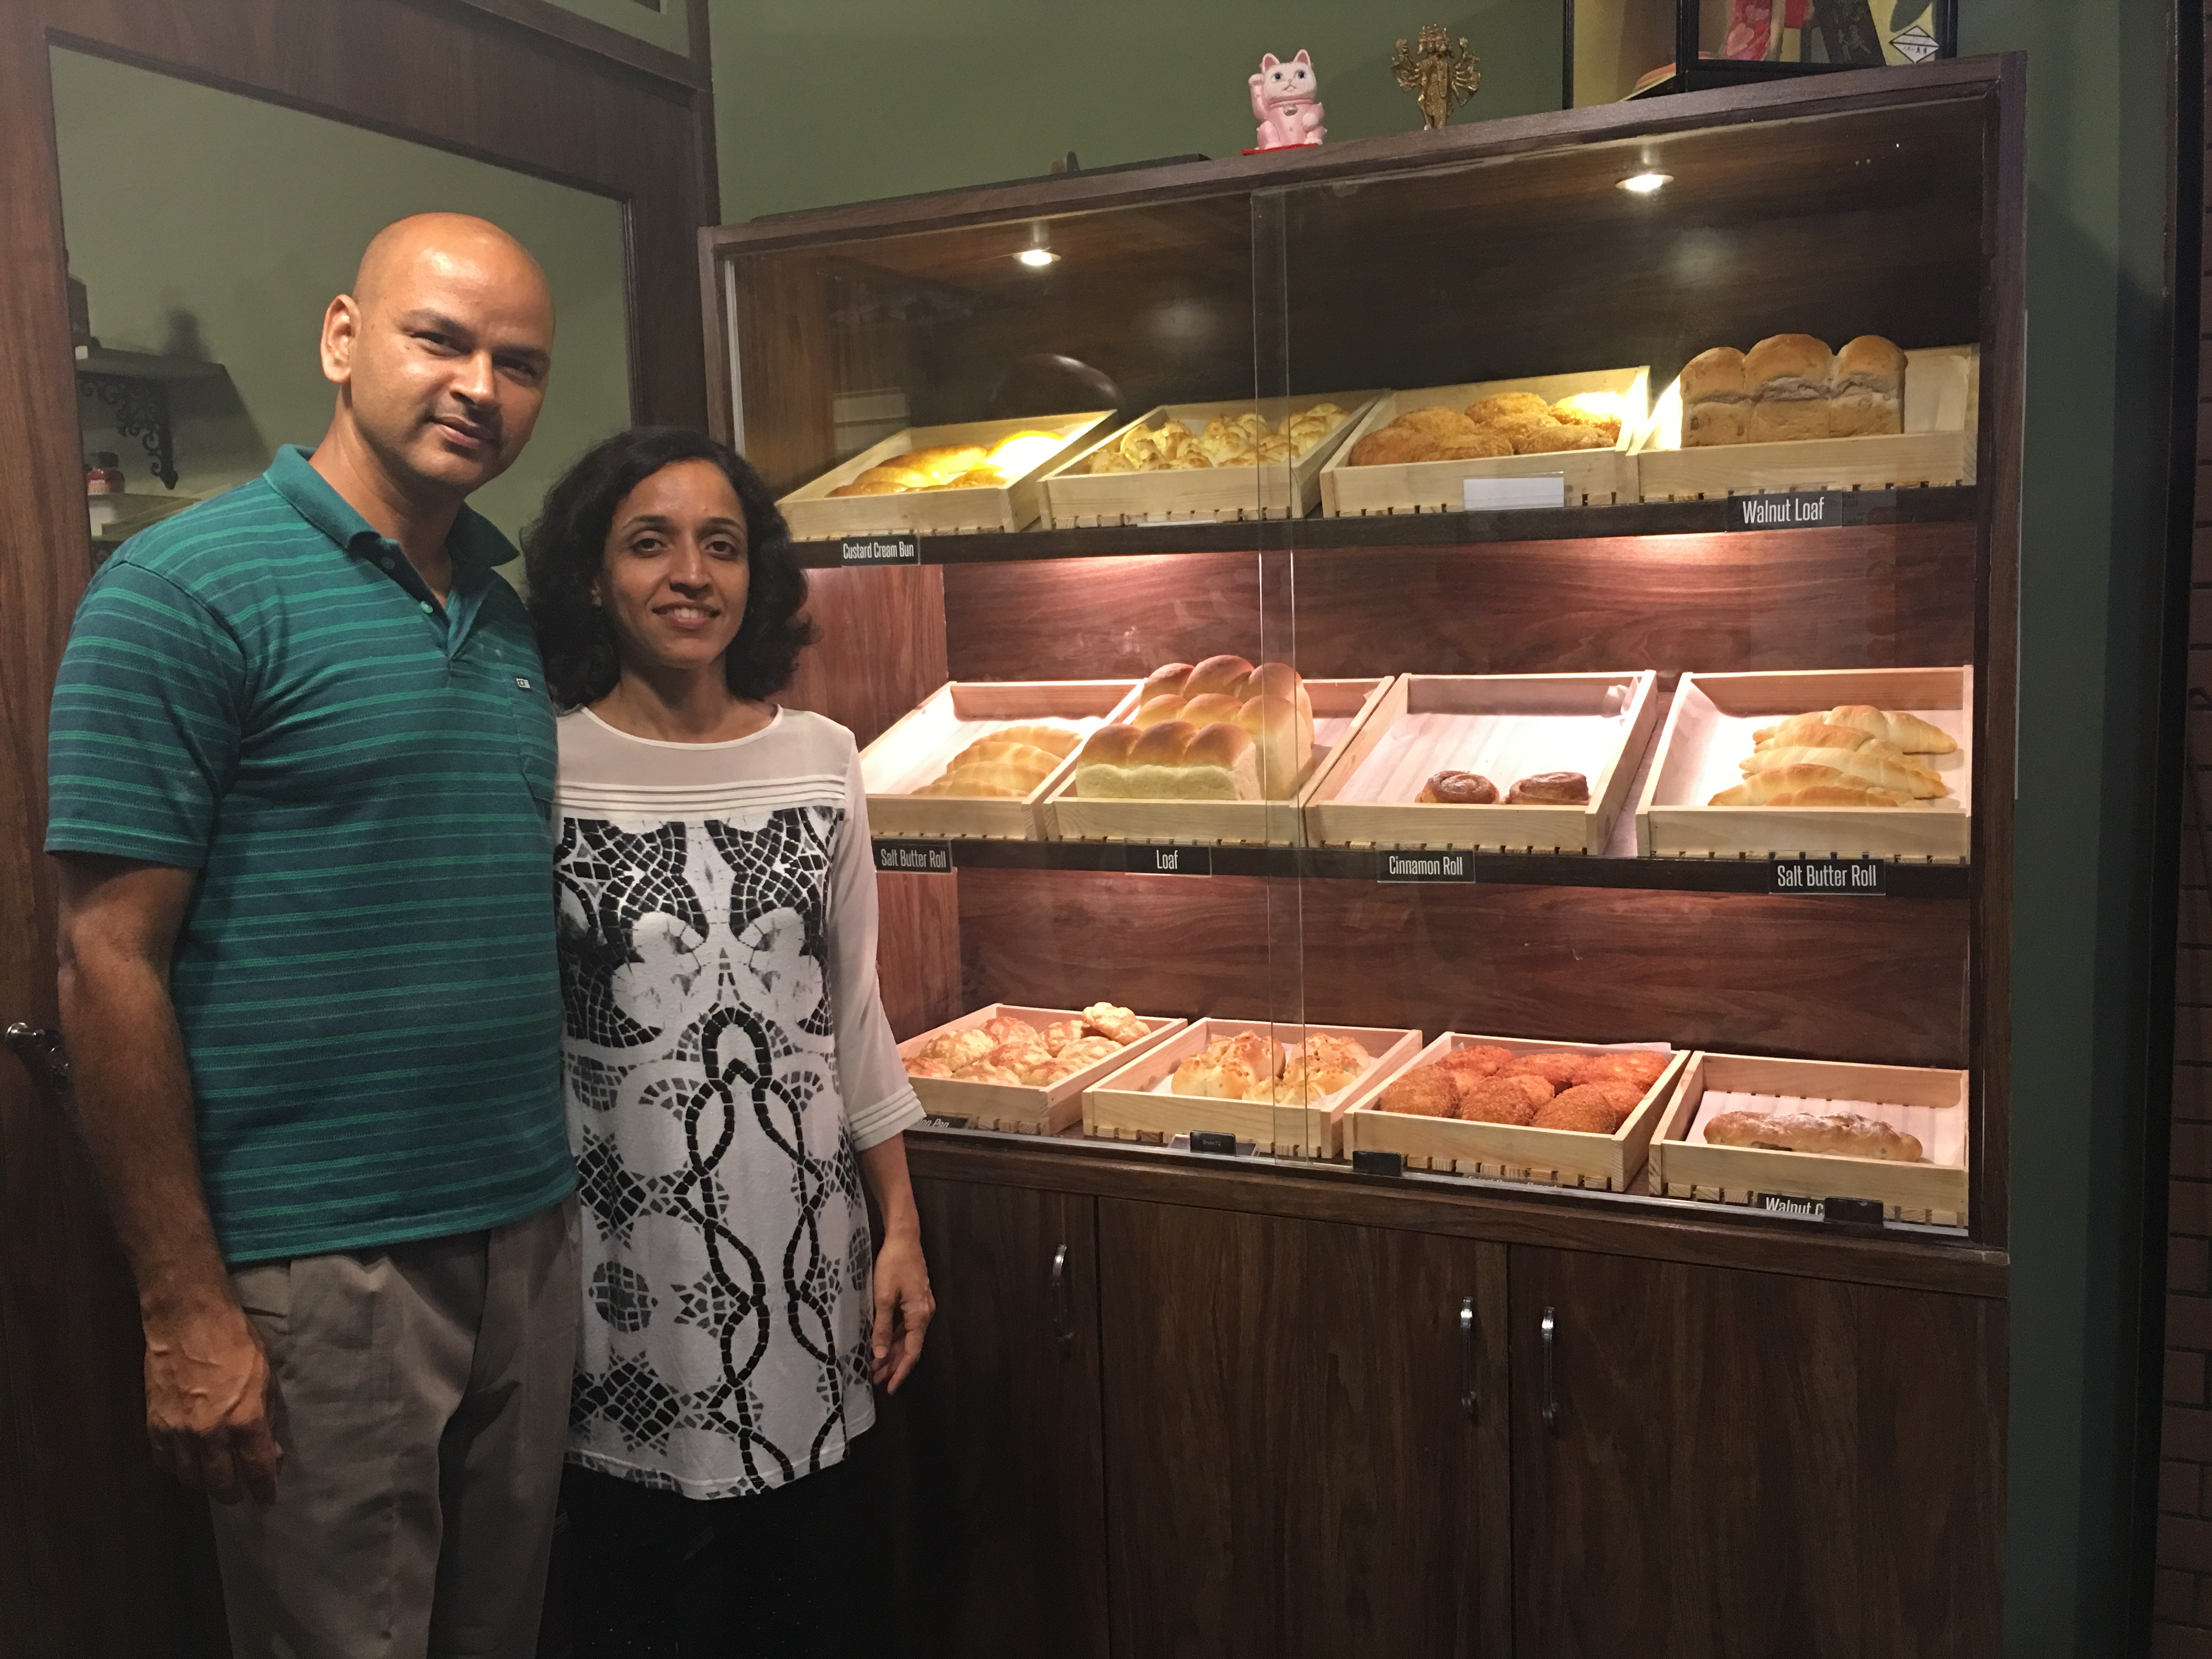 Pune's Tokyo bakery had the hardest time baking the softest Japanese bread